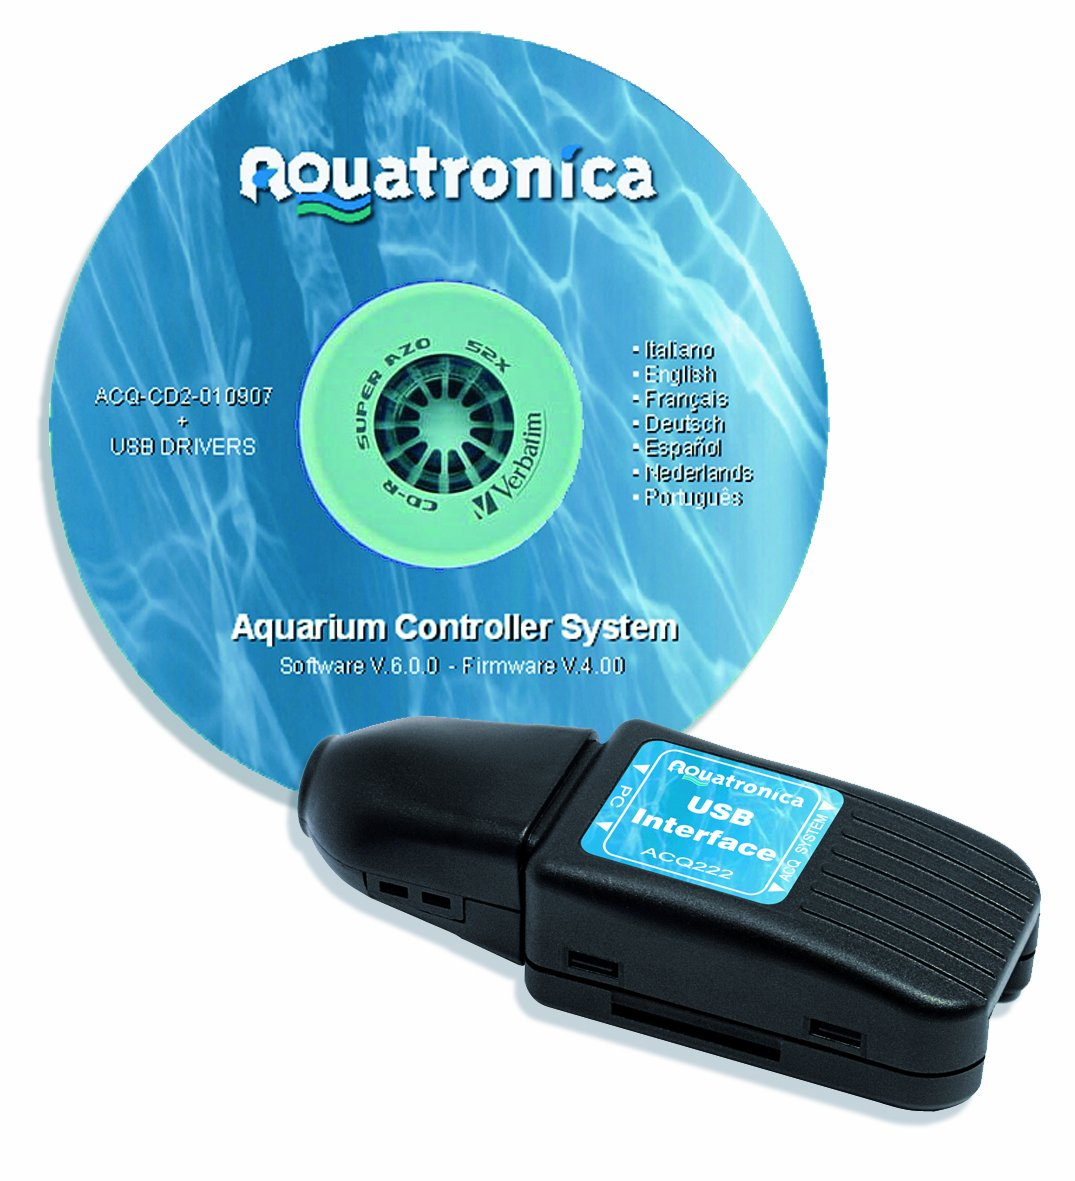 Aquatronica ACQ222 USB PC Kit, USB PC Interface and Software